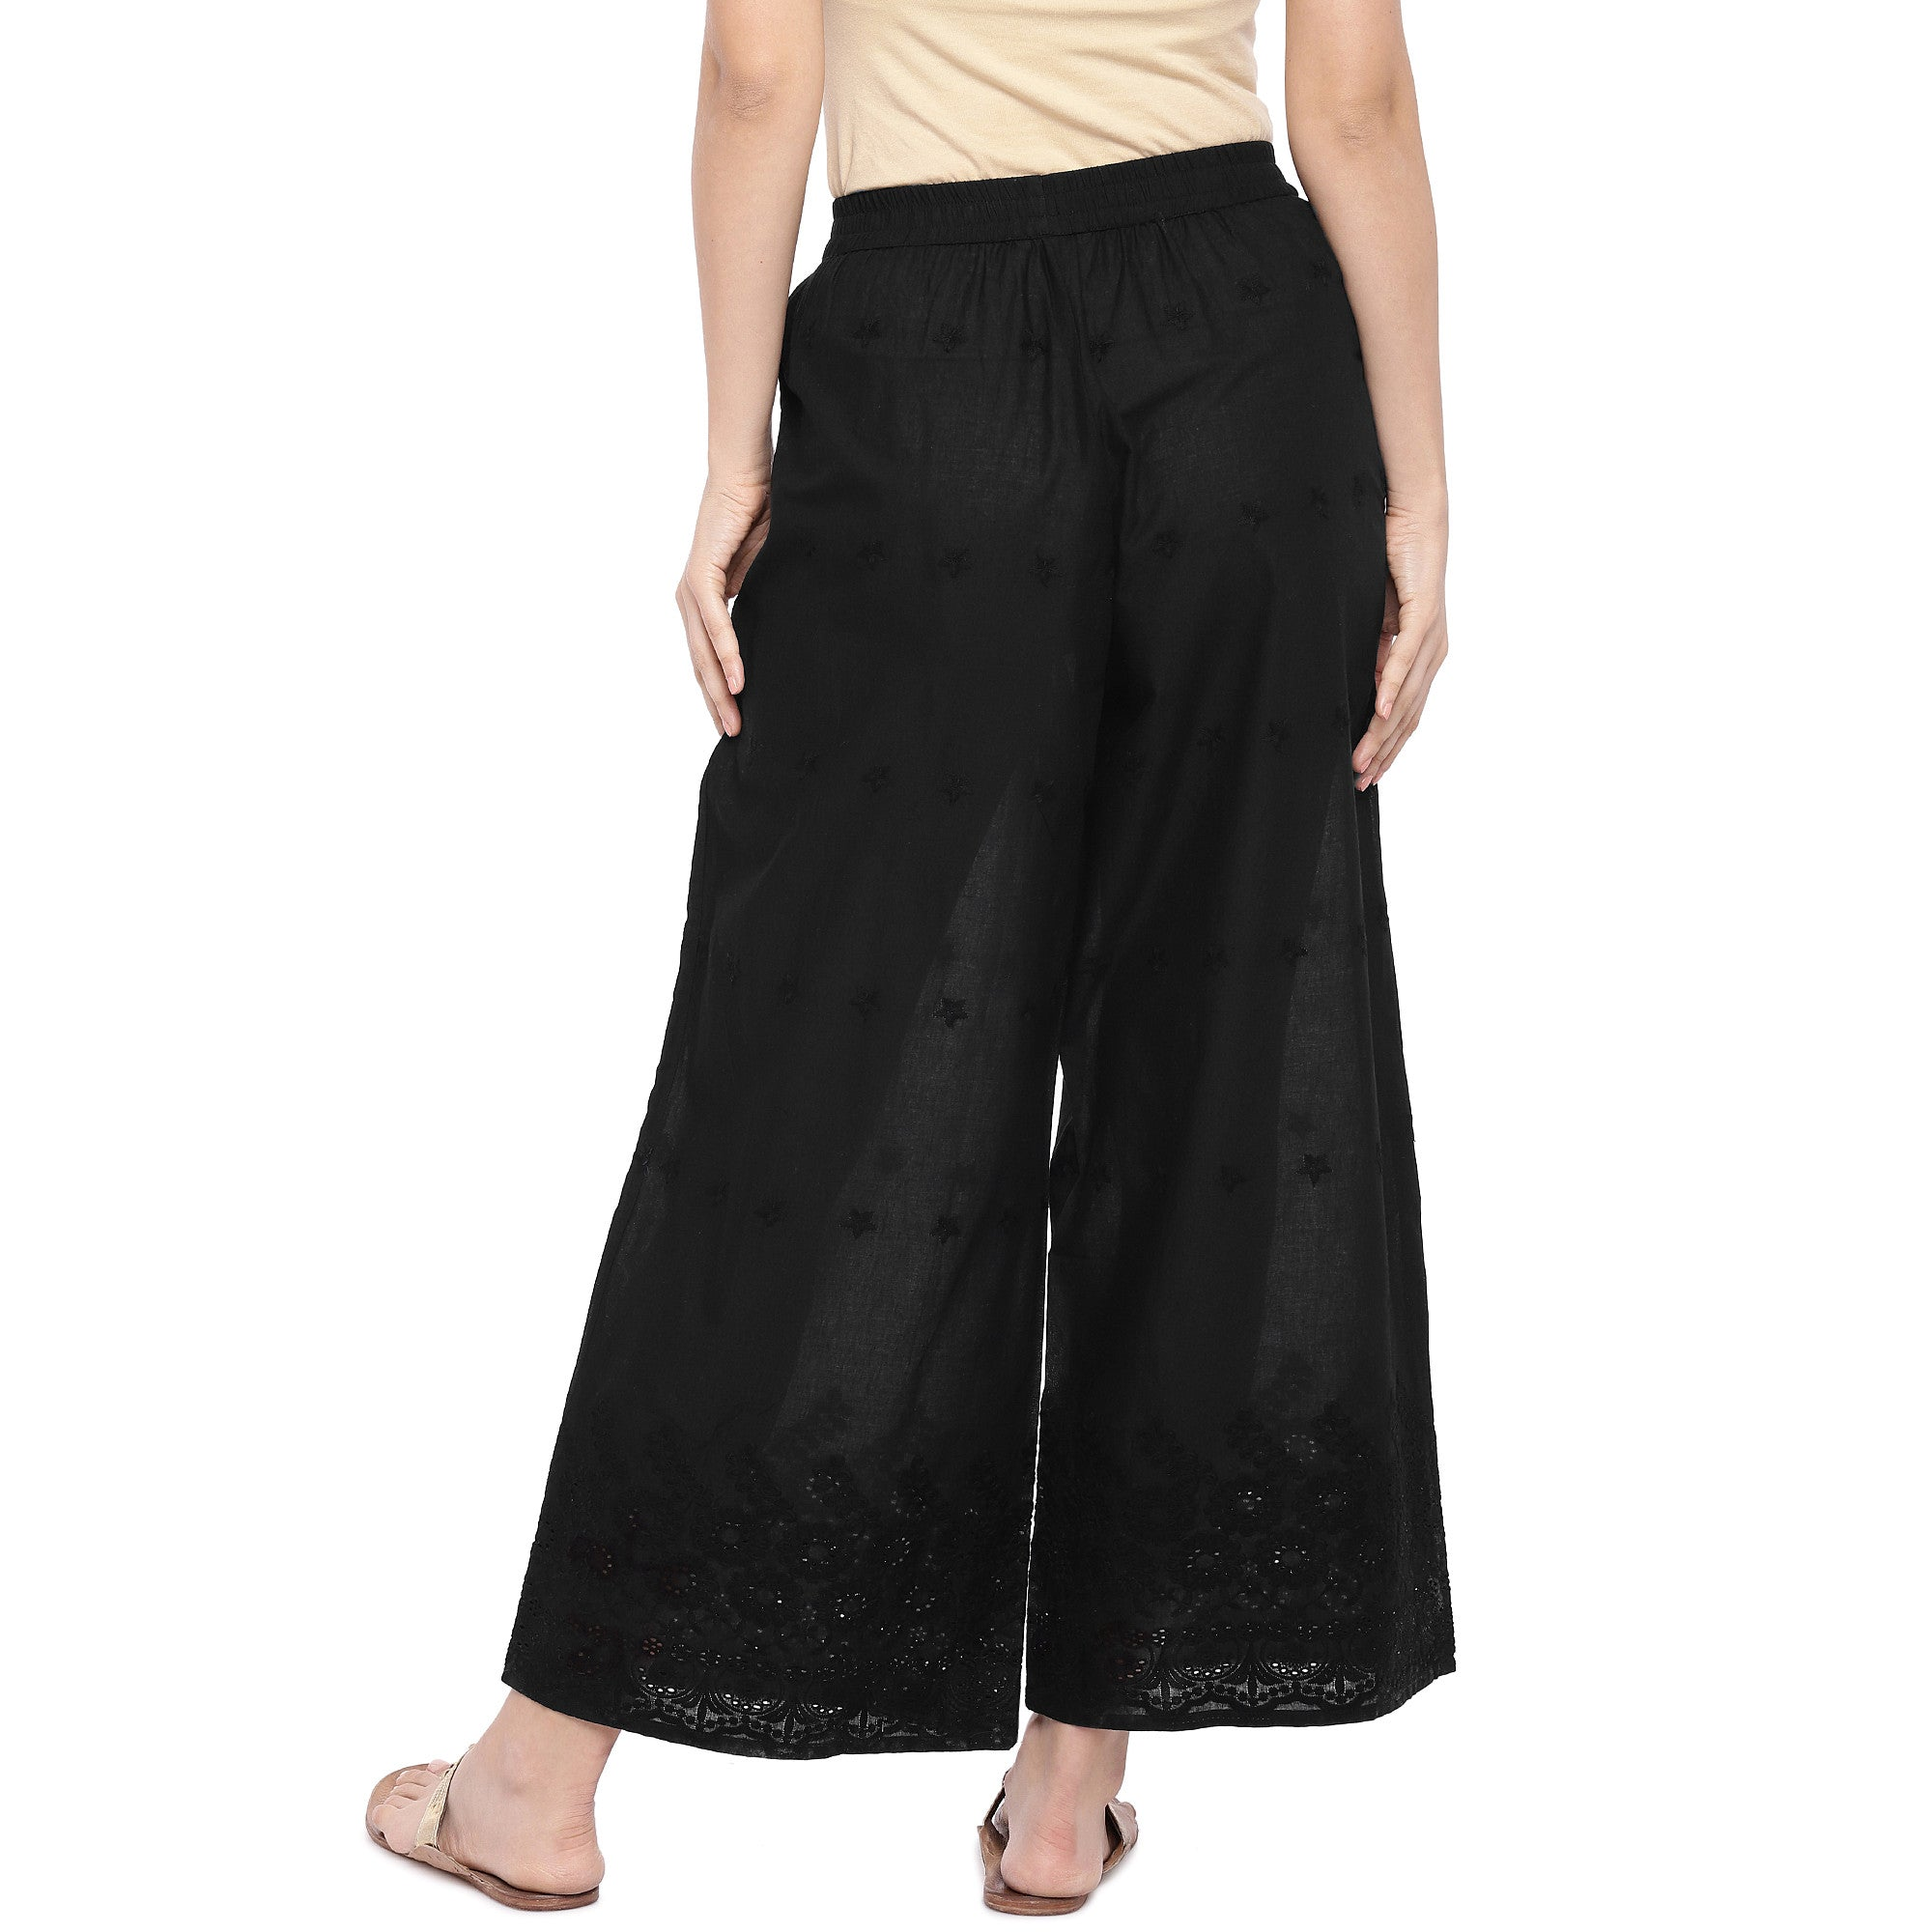 Black Wide Leg Solid Palazzos-3